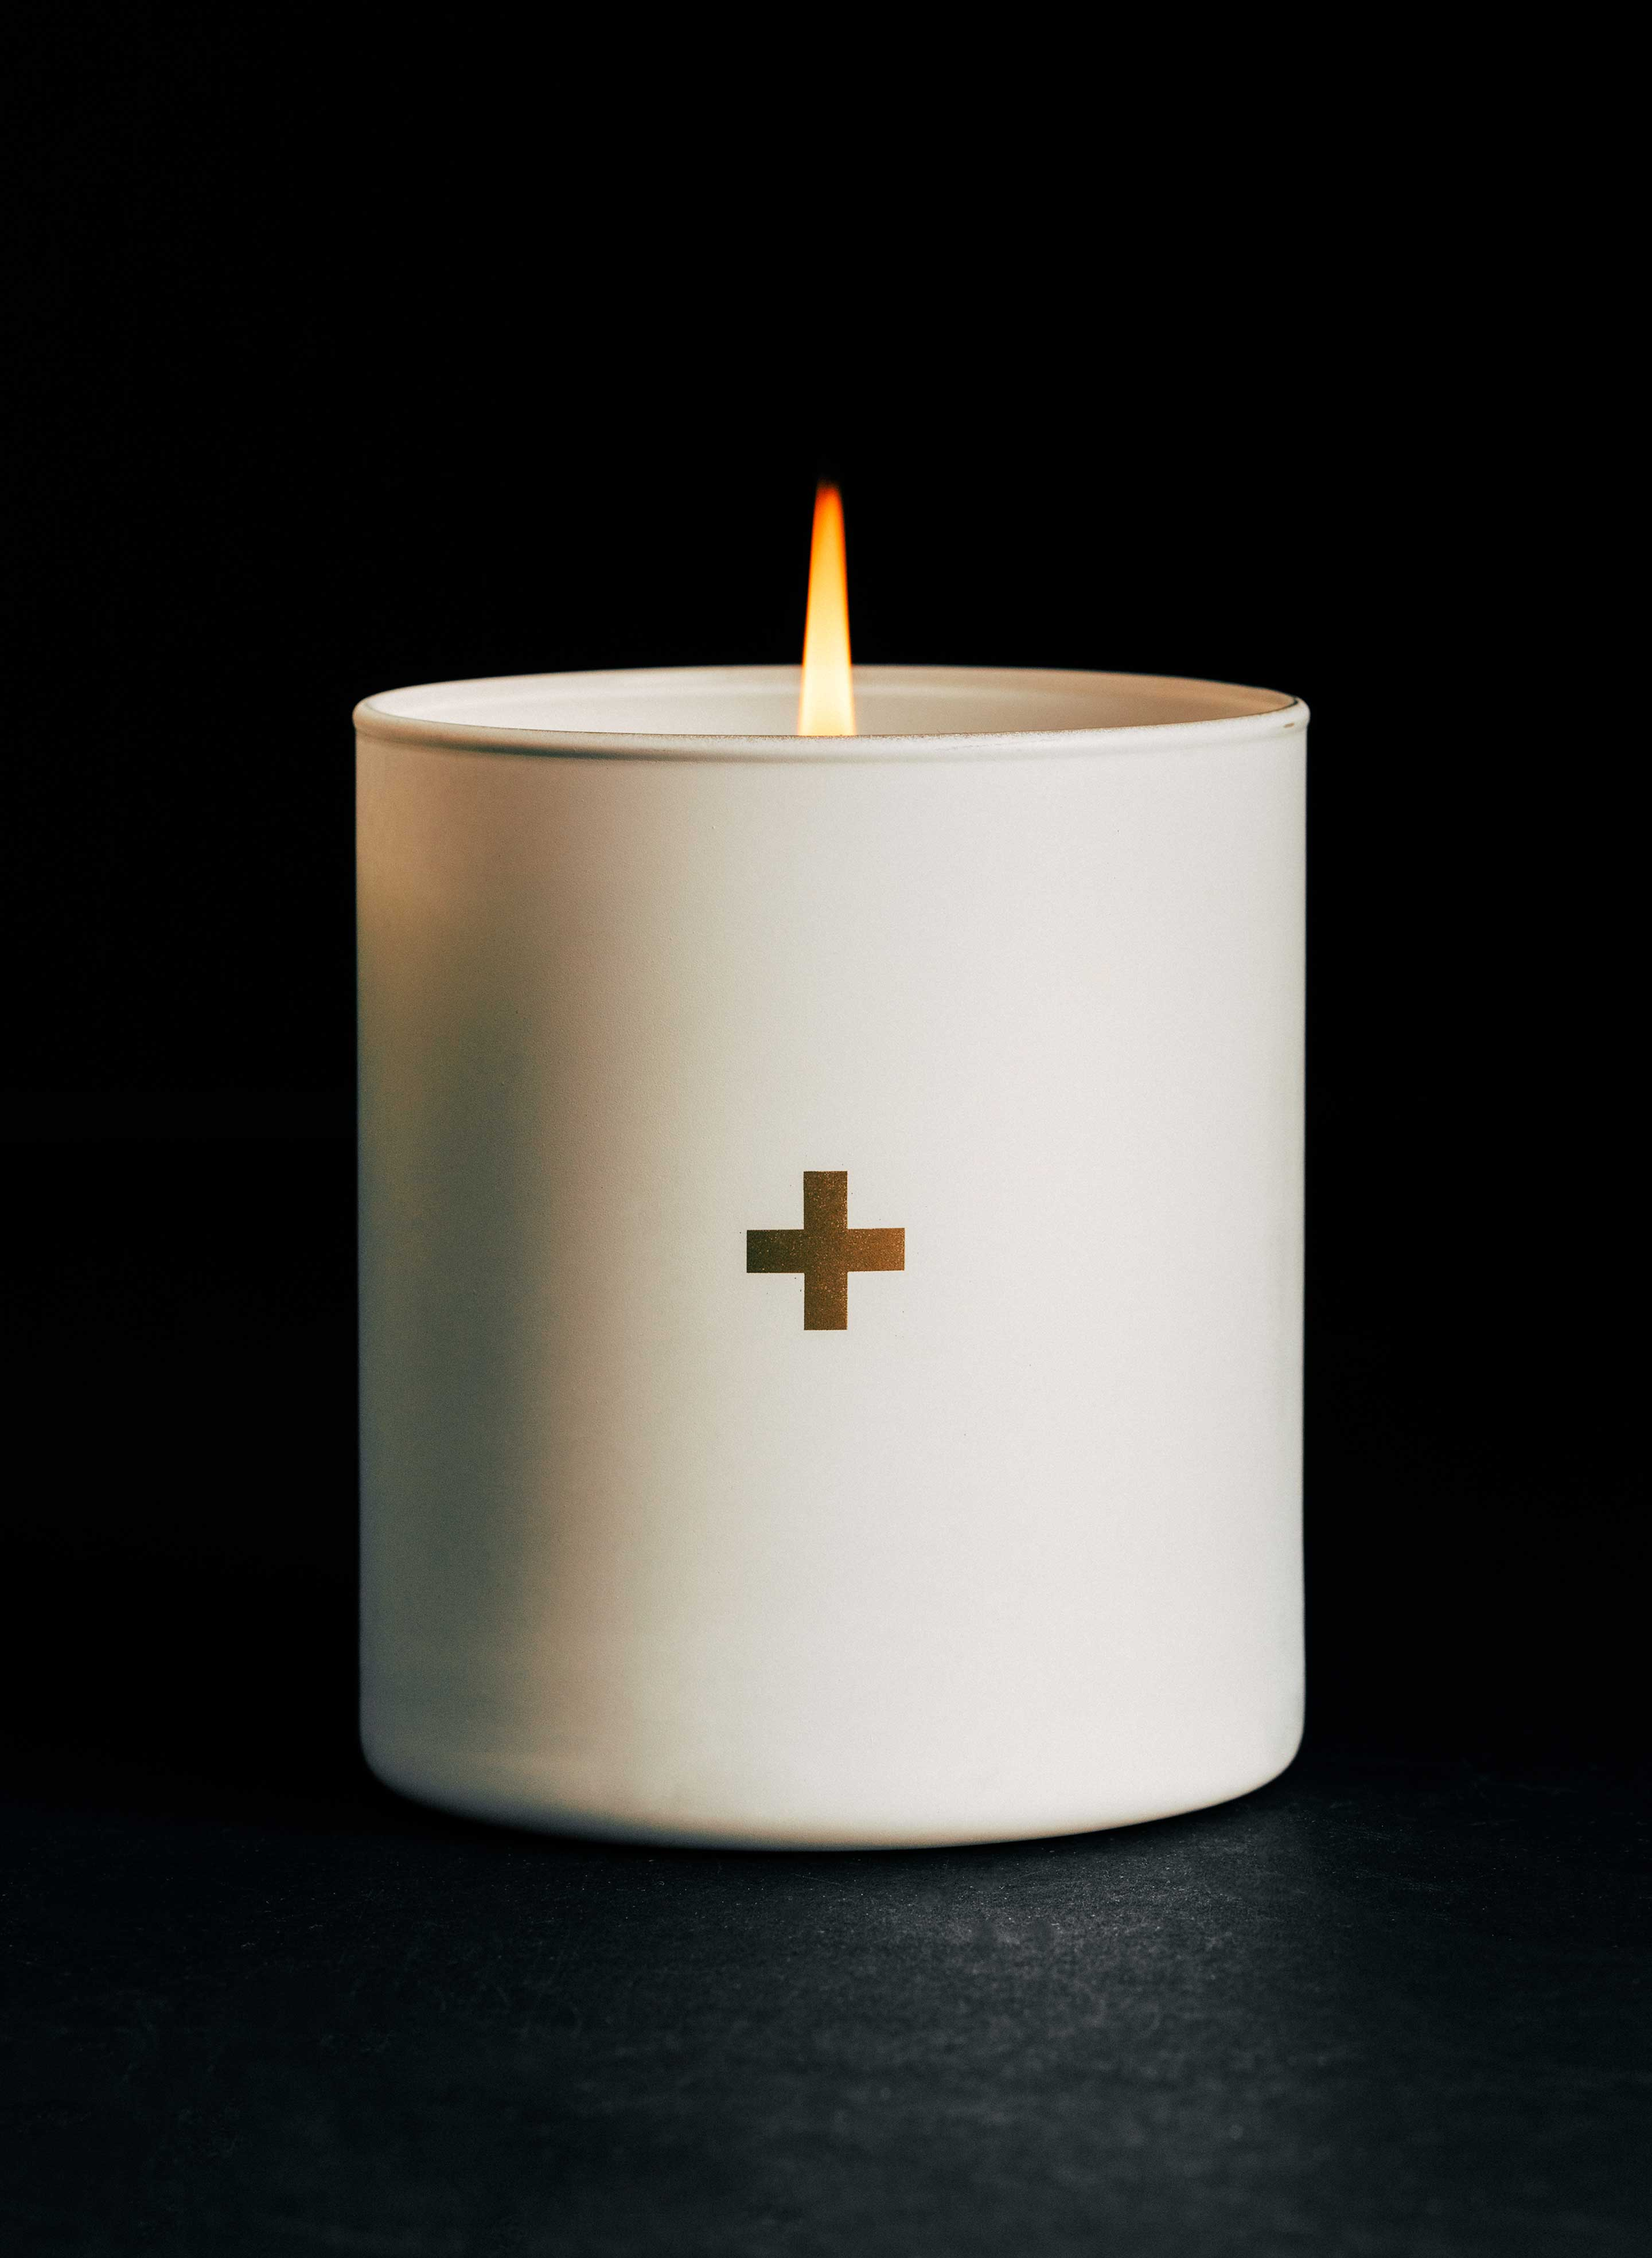 imogene + willie - the plus candle no. 2 (white)